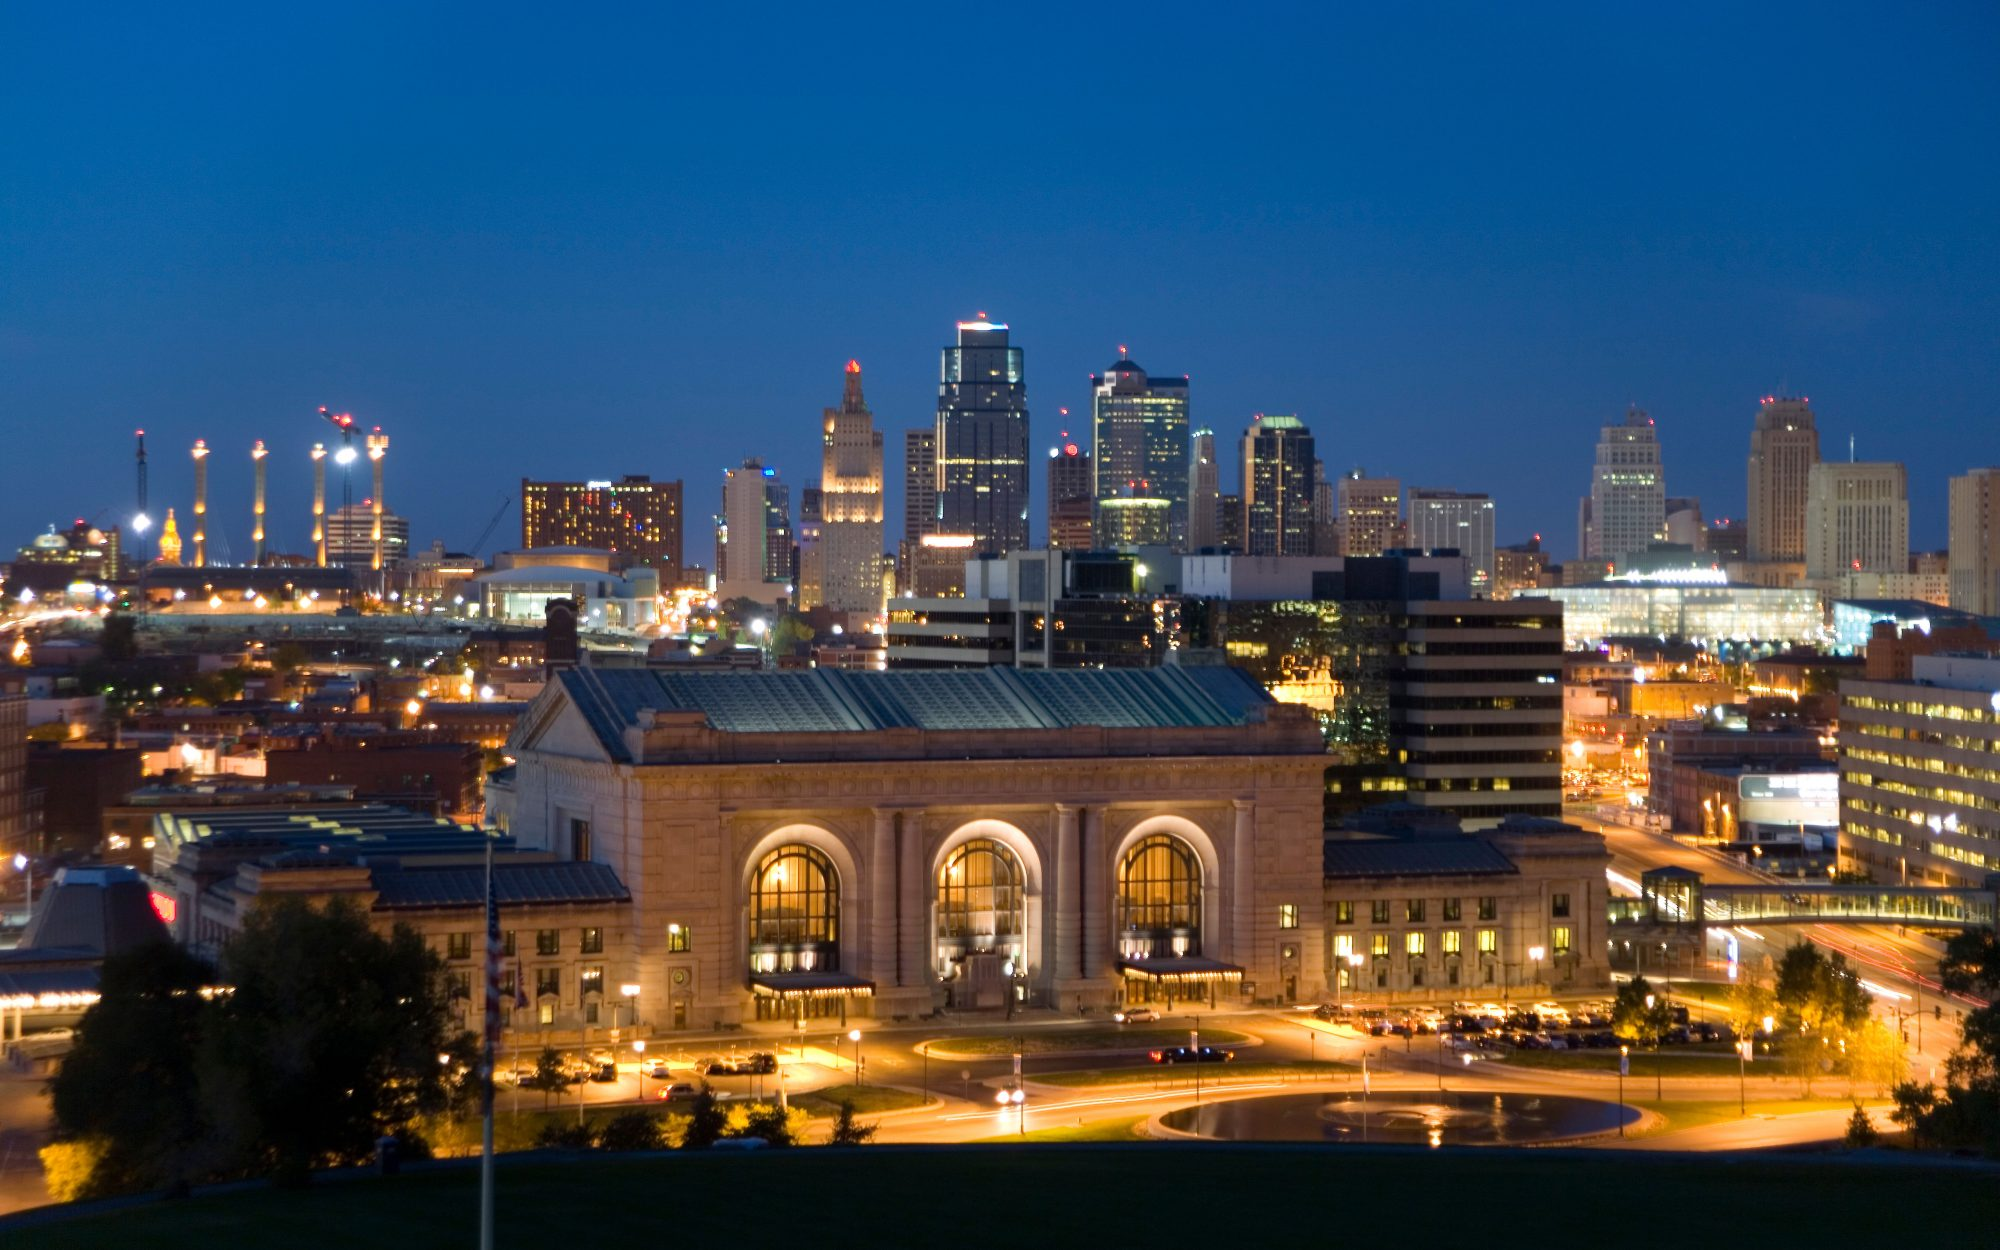 America's Most Romantic Cities: No. 18 Kansas City, MO